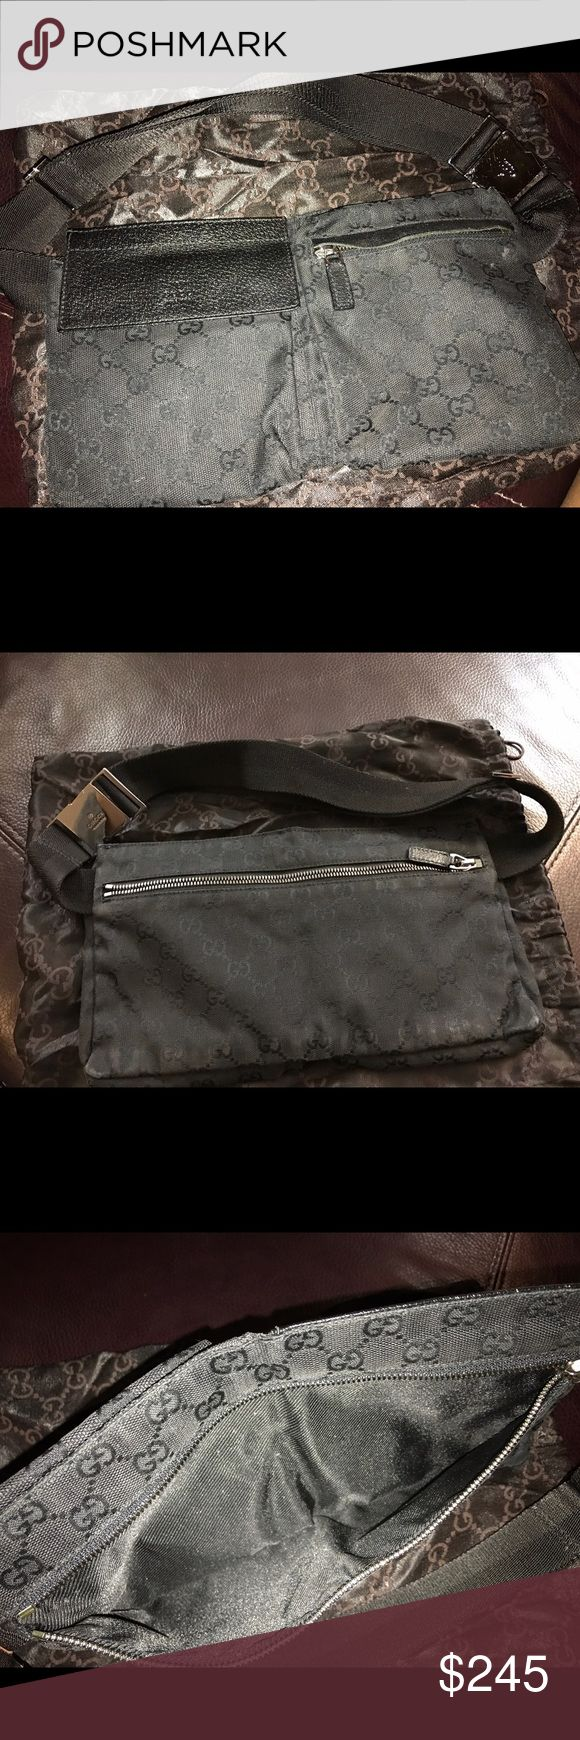 Authentic Gucci Canvas Belt Bag Original all black Gucci belt bag/w dust bag included.  In excellent condition. Gucci Bags